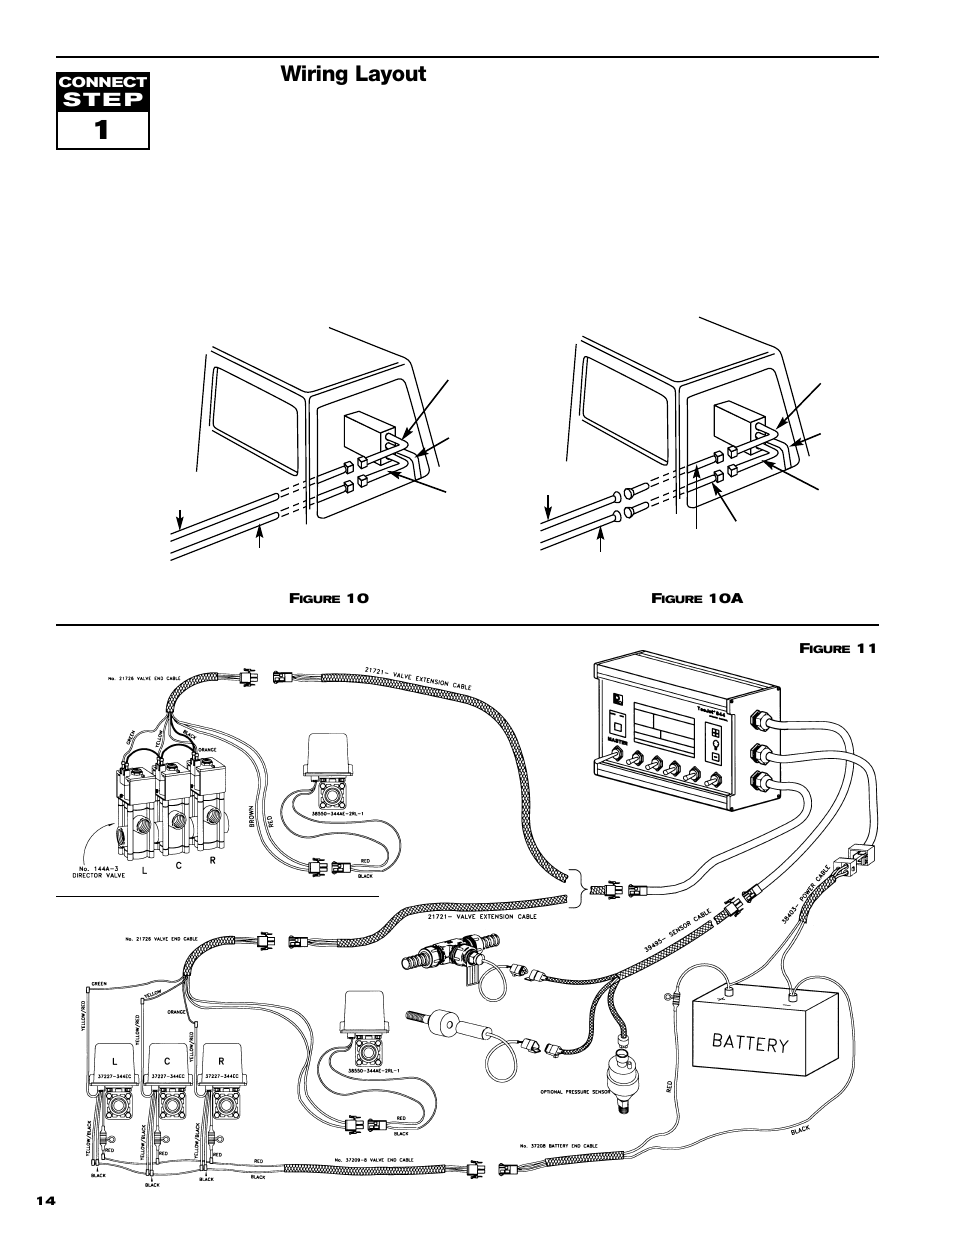 teejet 844 sprayer control page16 wiring layout, s t e p teejet 844 sprayer control user manual teejet ball valve wiring diagram at nearapp.co